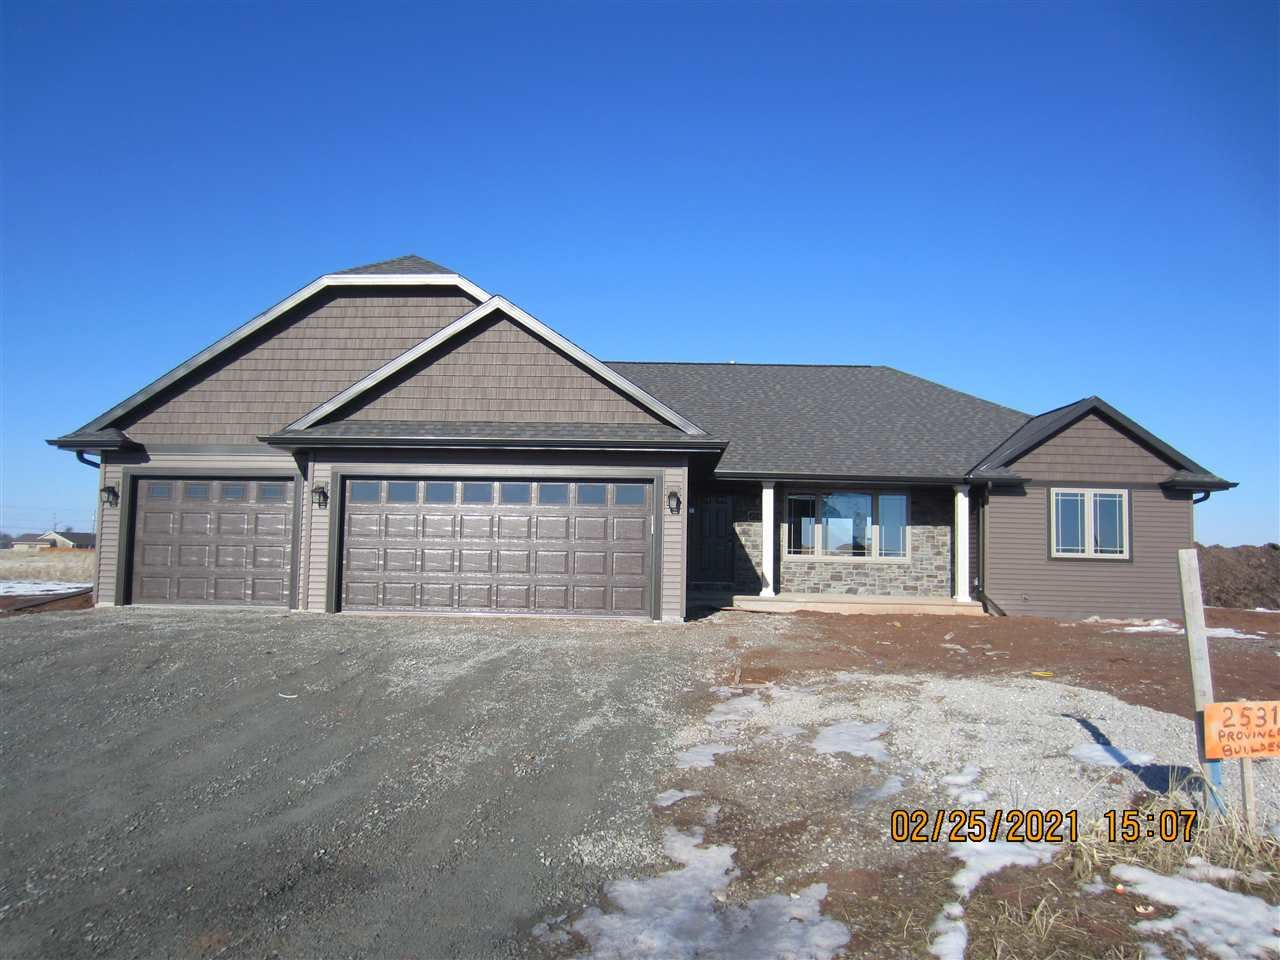 2531 KILRUSH Road, De Pere, WI 54115 - MLS#: 50236049